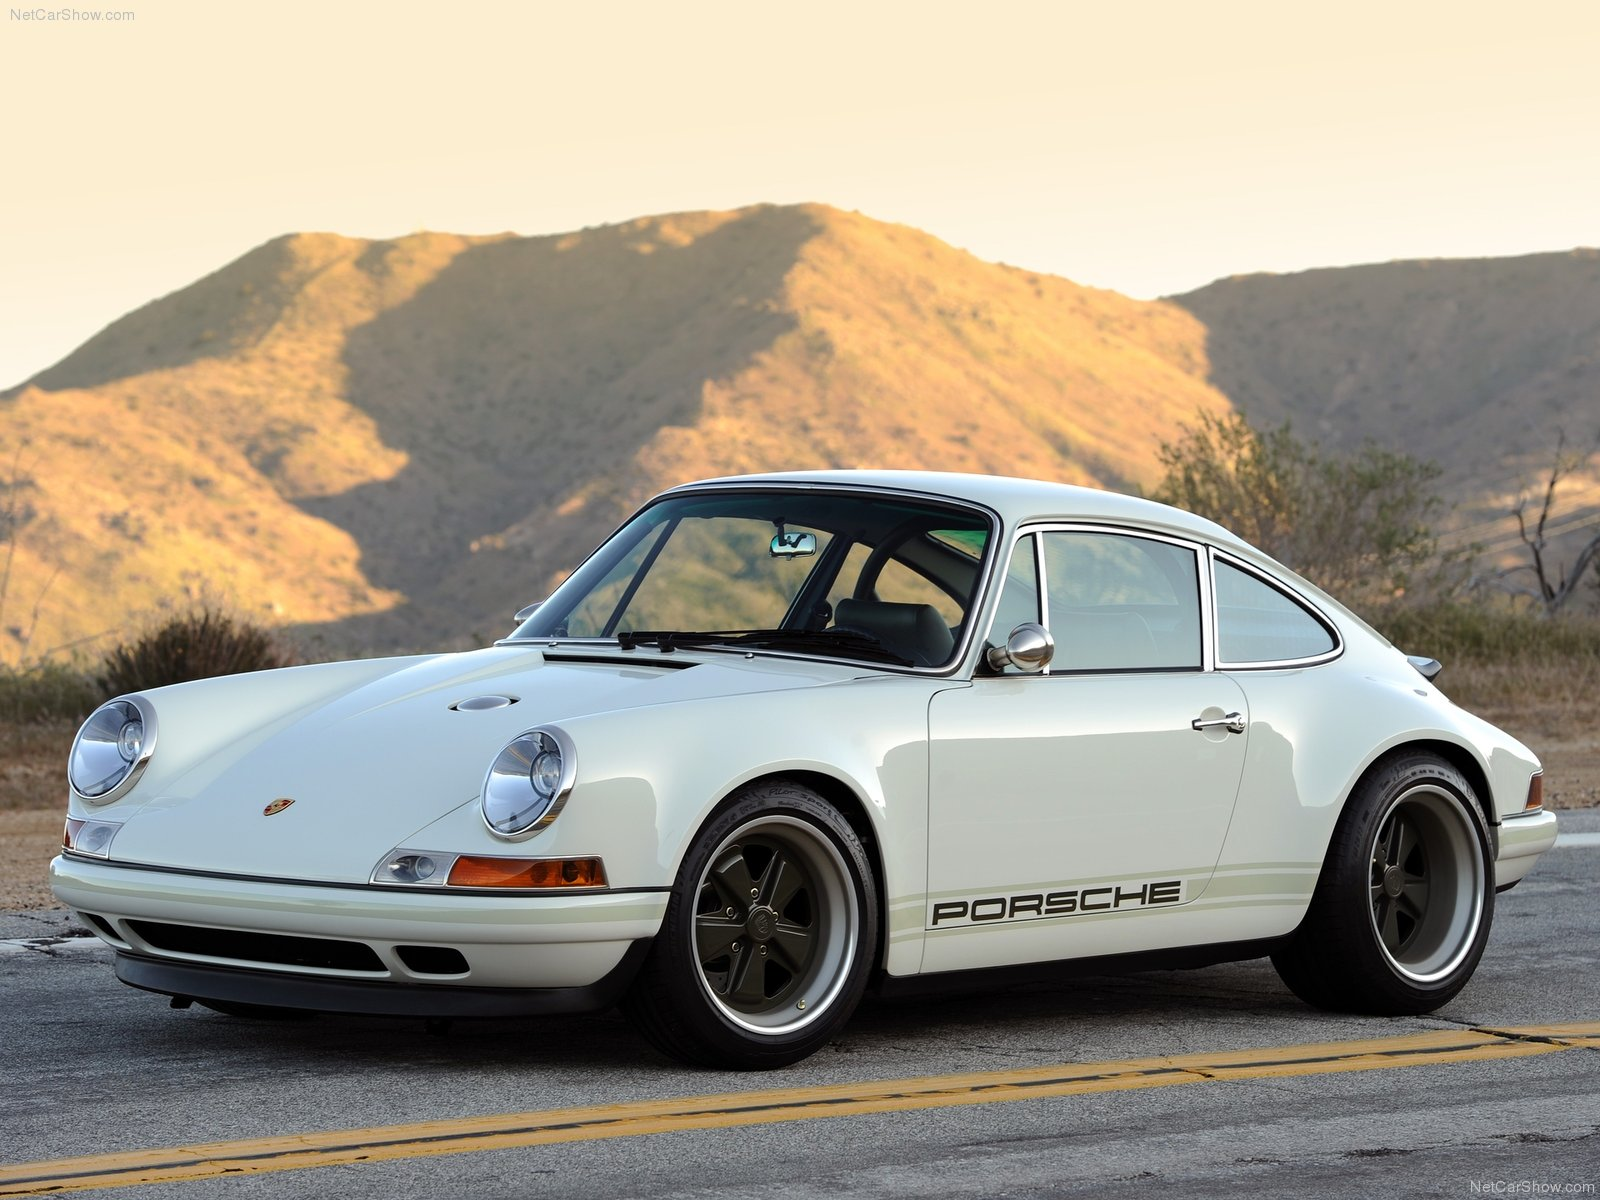 Singer 911 Photos Photogallery With 49 Pics Carsbase Com